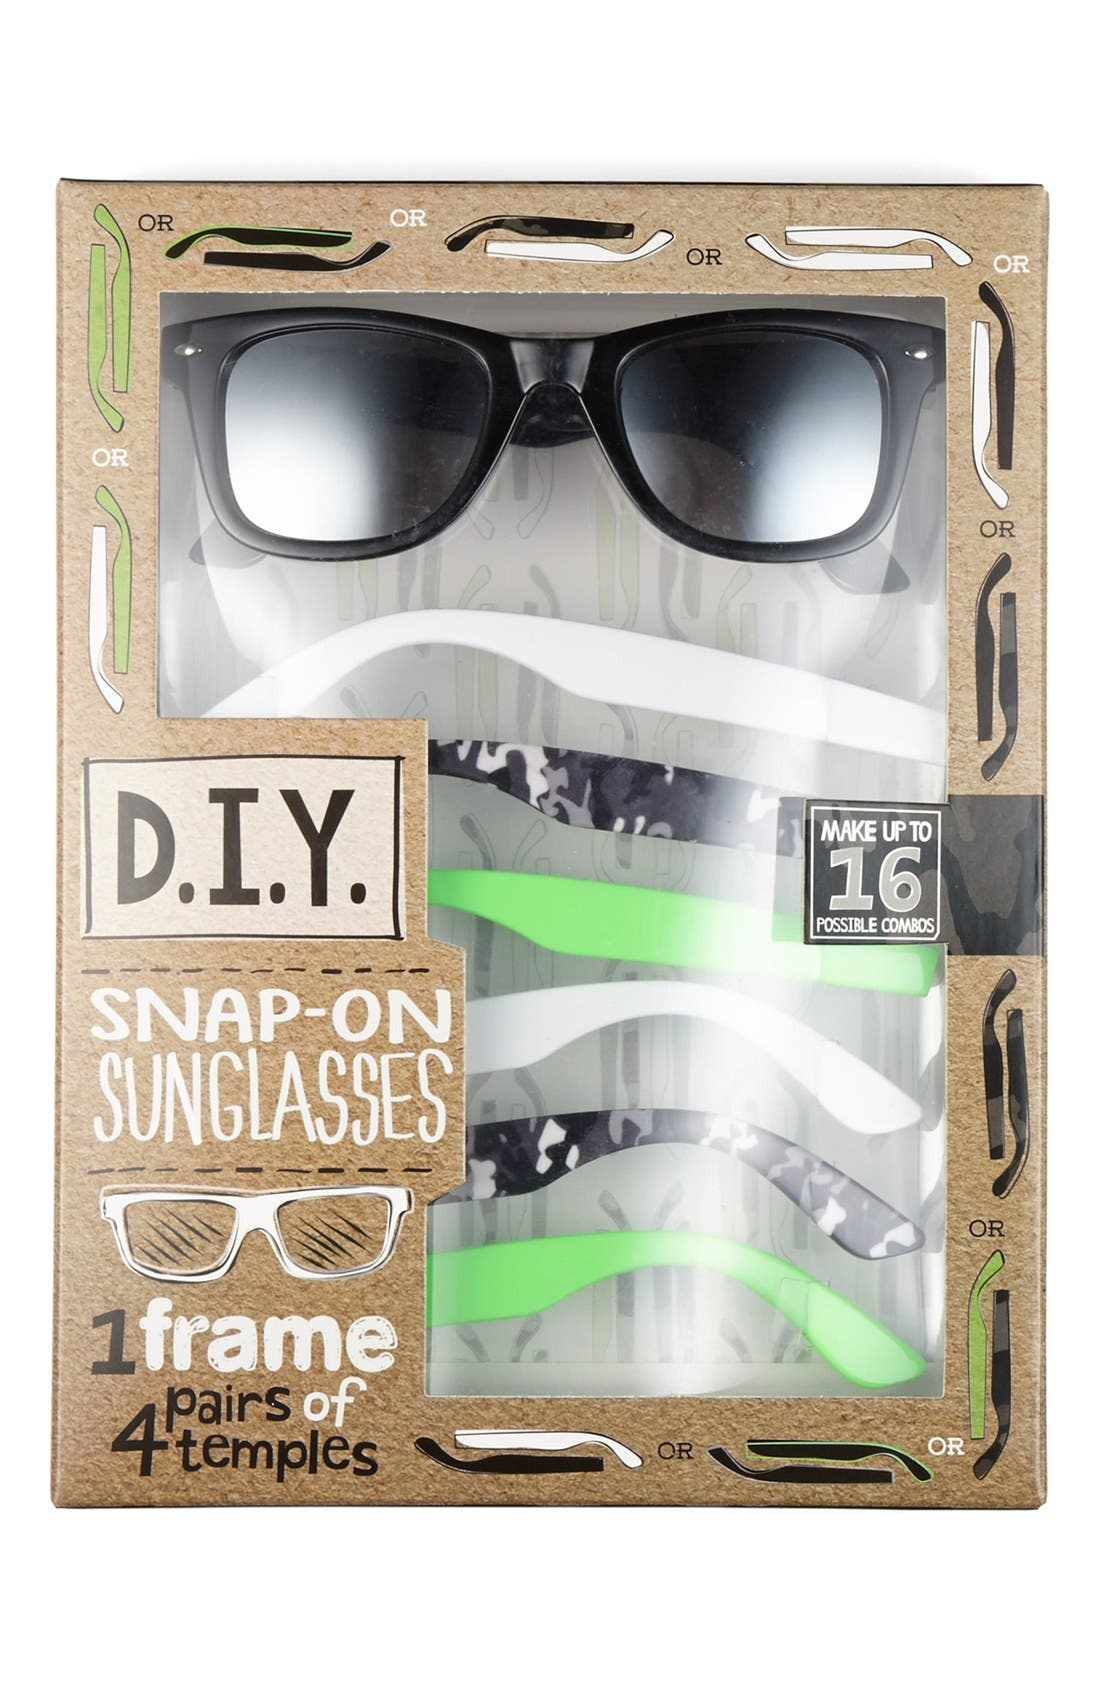 Alternate Image 1 Selected - Icon Eyewear 'D.I.Y.' Snap-On Sunglasses Kit